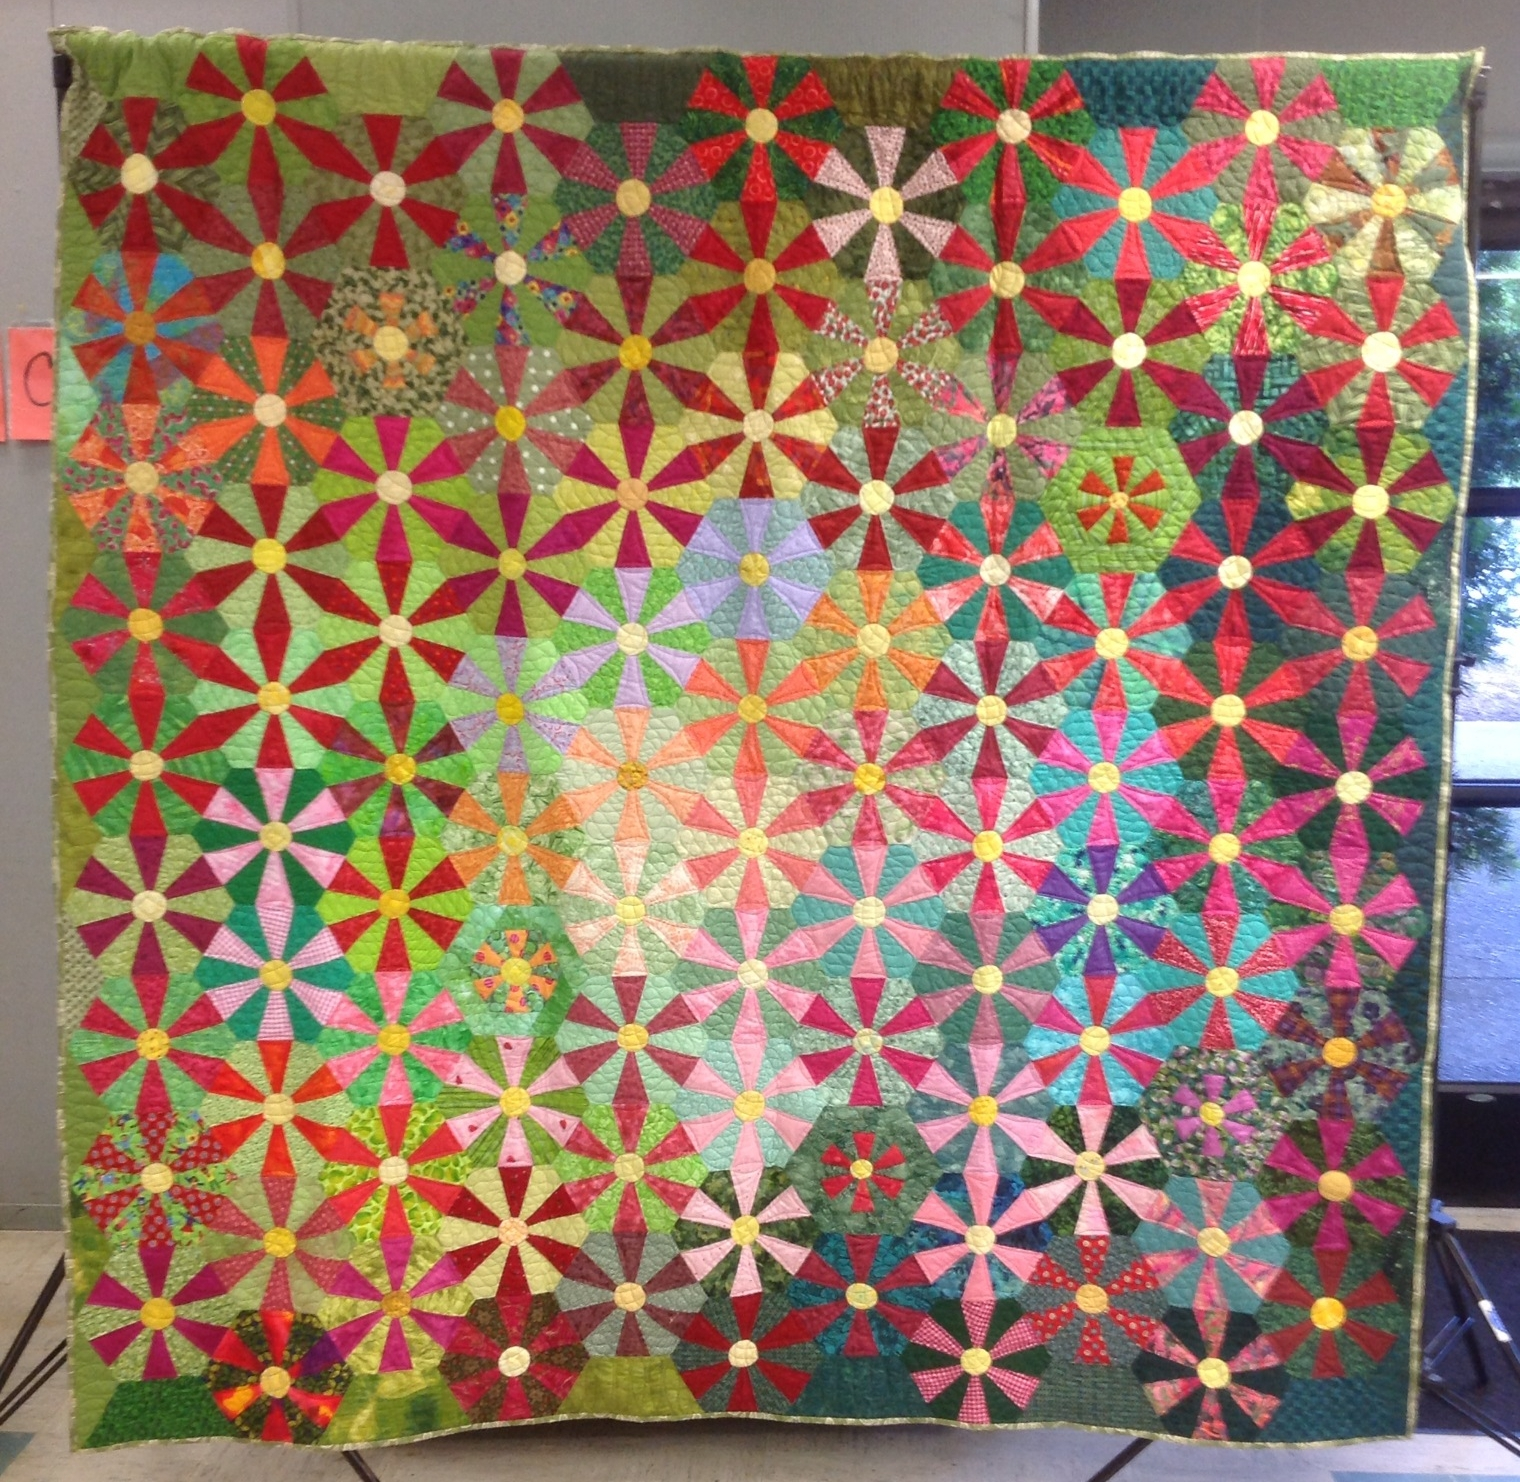 Friendship Flowers Petaluma Quilt Guild's version of Catena 2013